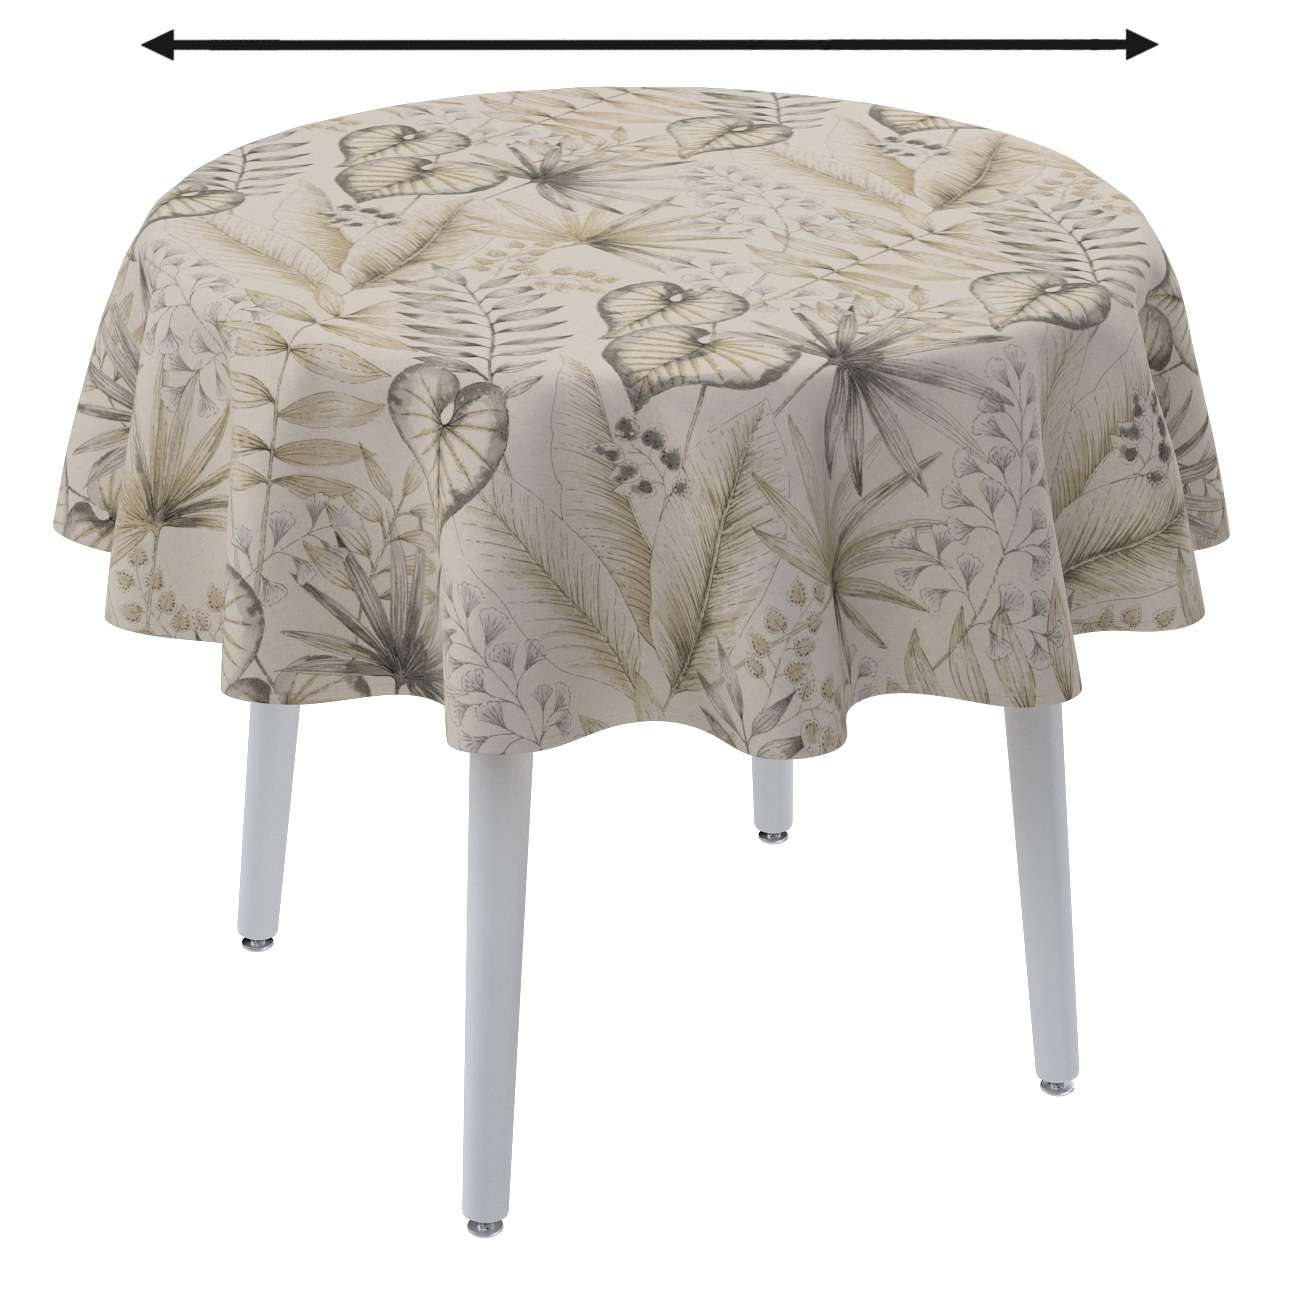 Round tablecloth in collection Nordic, fabric: 142-93